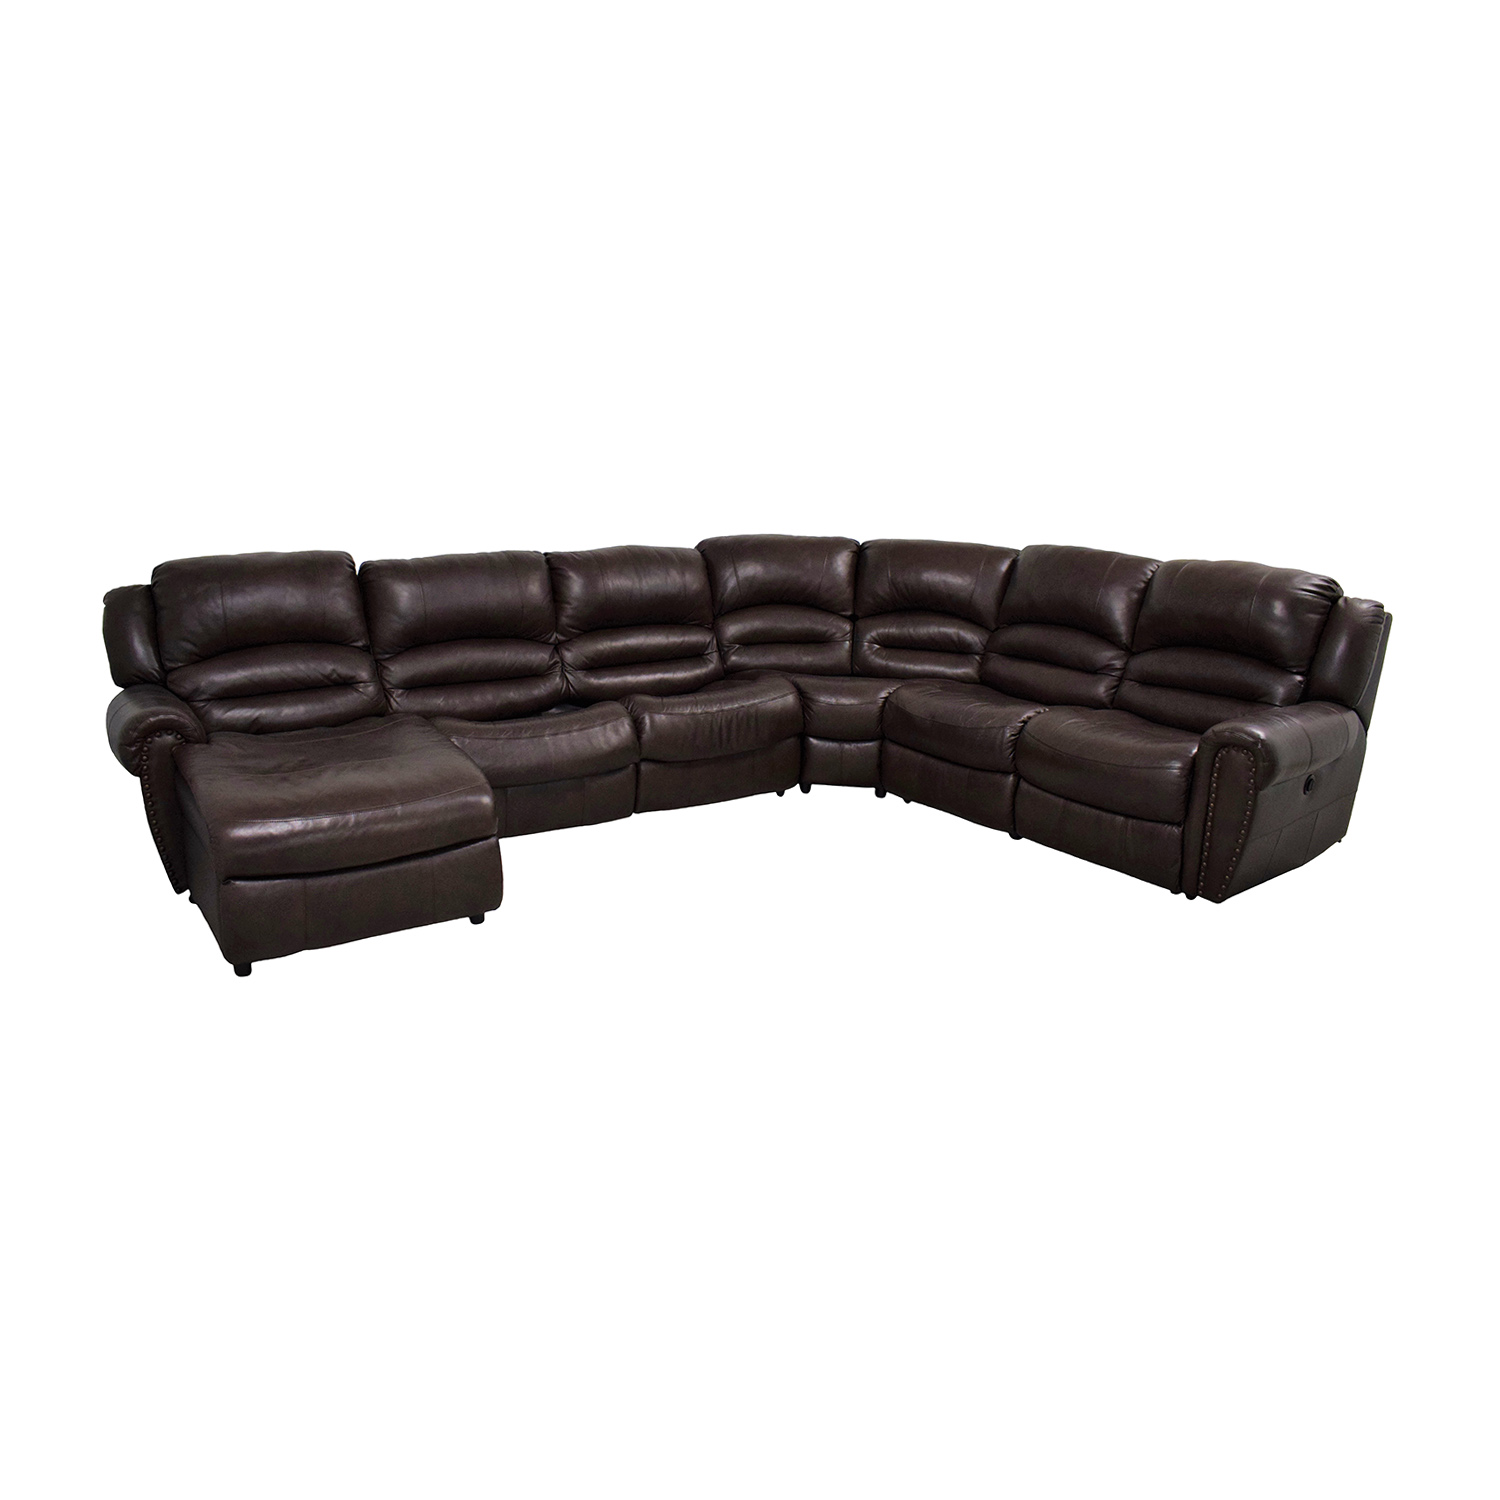 buy Raymour & Flanigan Chaise Recliner Sectional Sleeper Sofa Raymour & Flanigan Sectionals